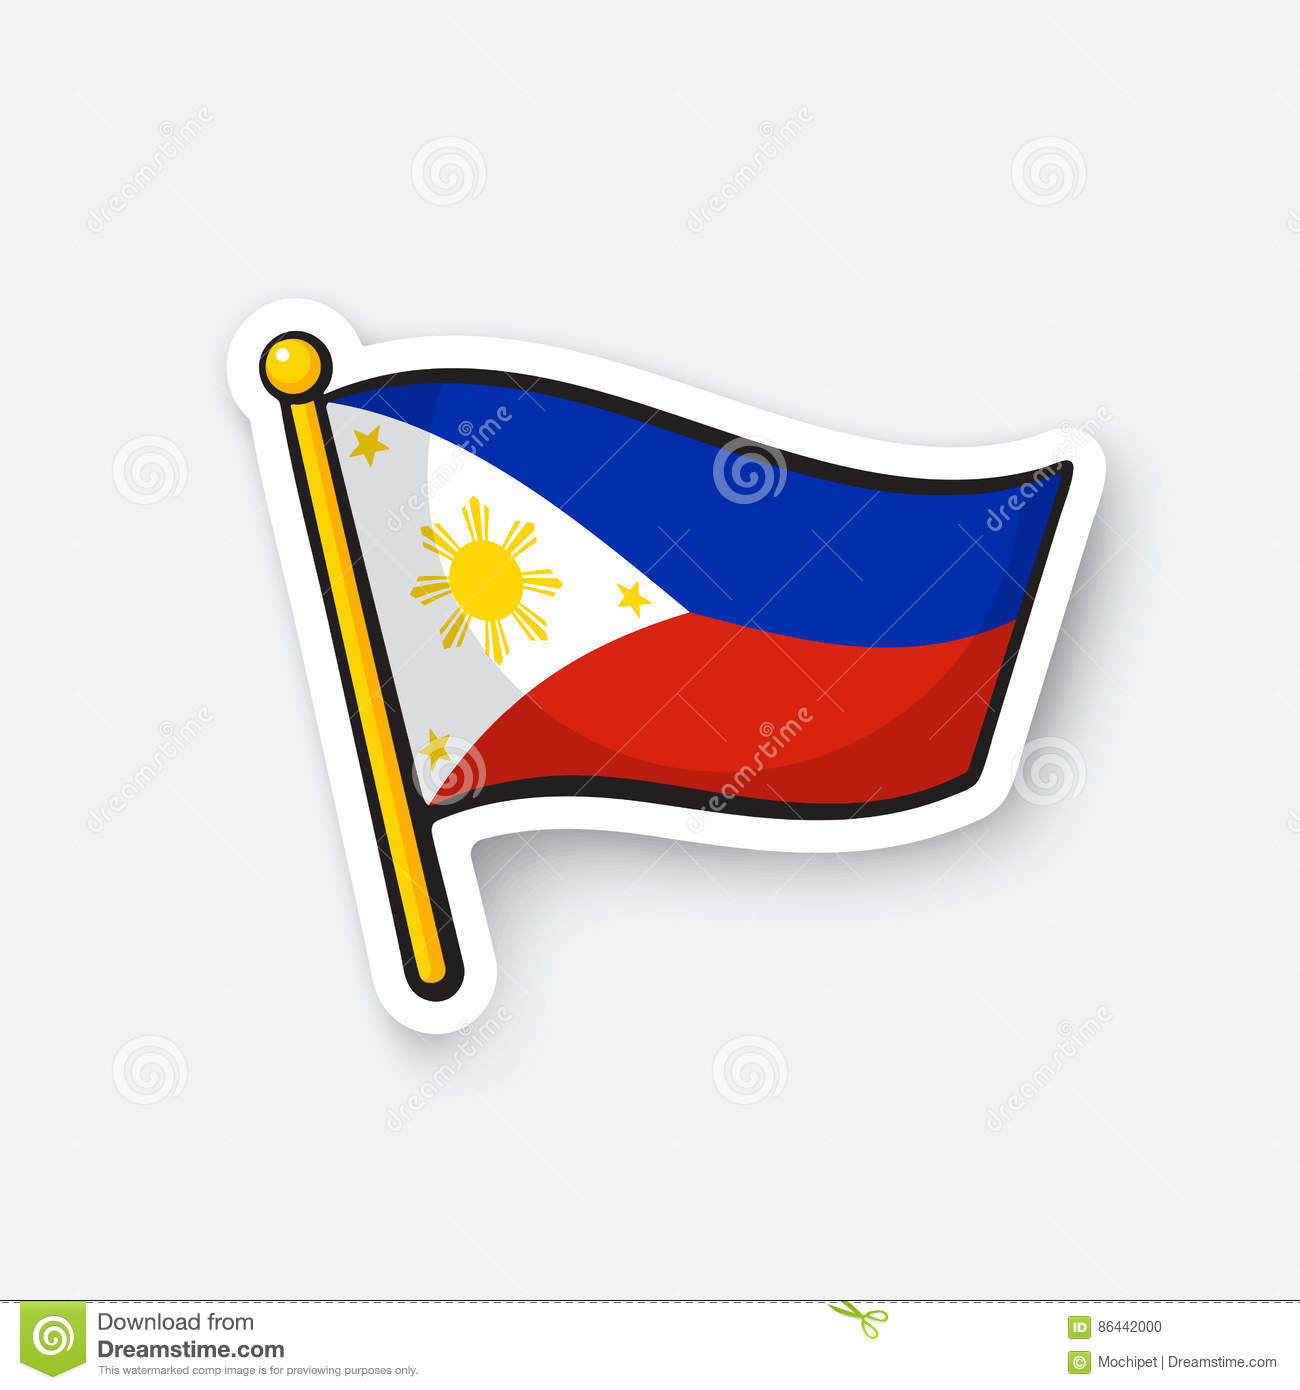 Sticker flag of the philippines stock vector illustration of sticker flag of the philippines biocorpaavc Choice Image